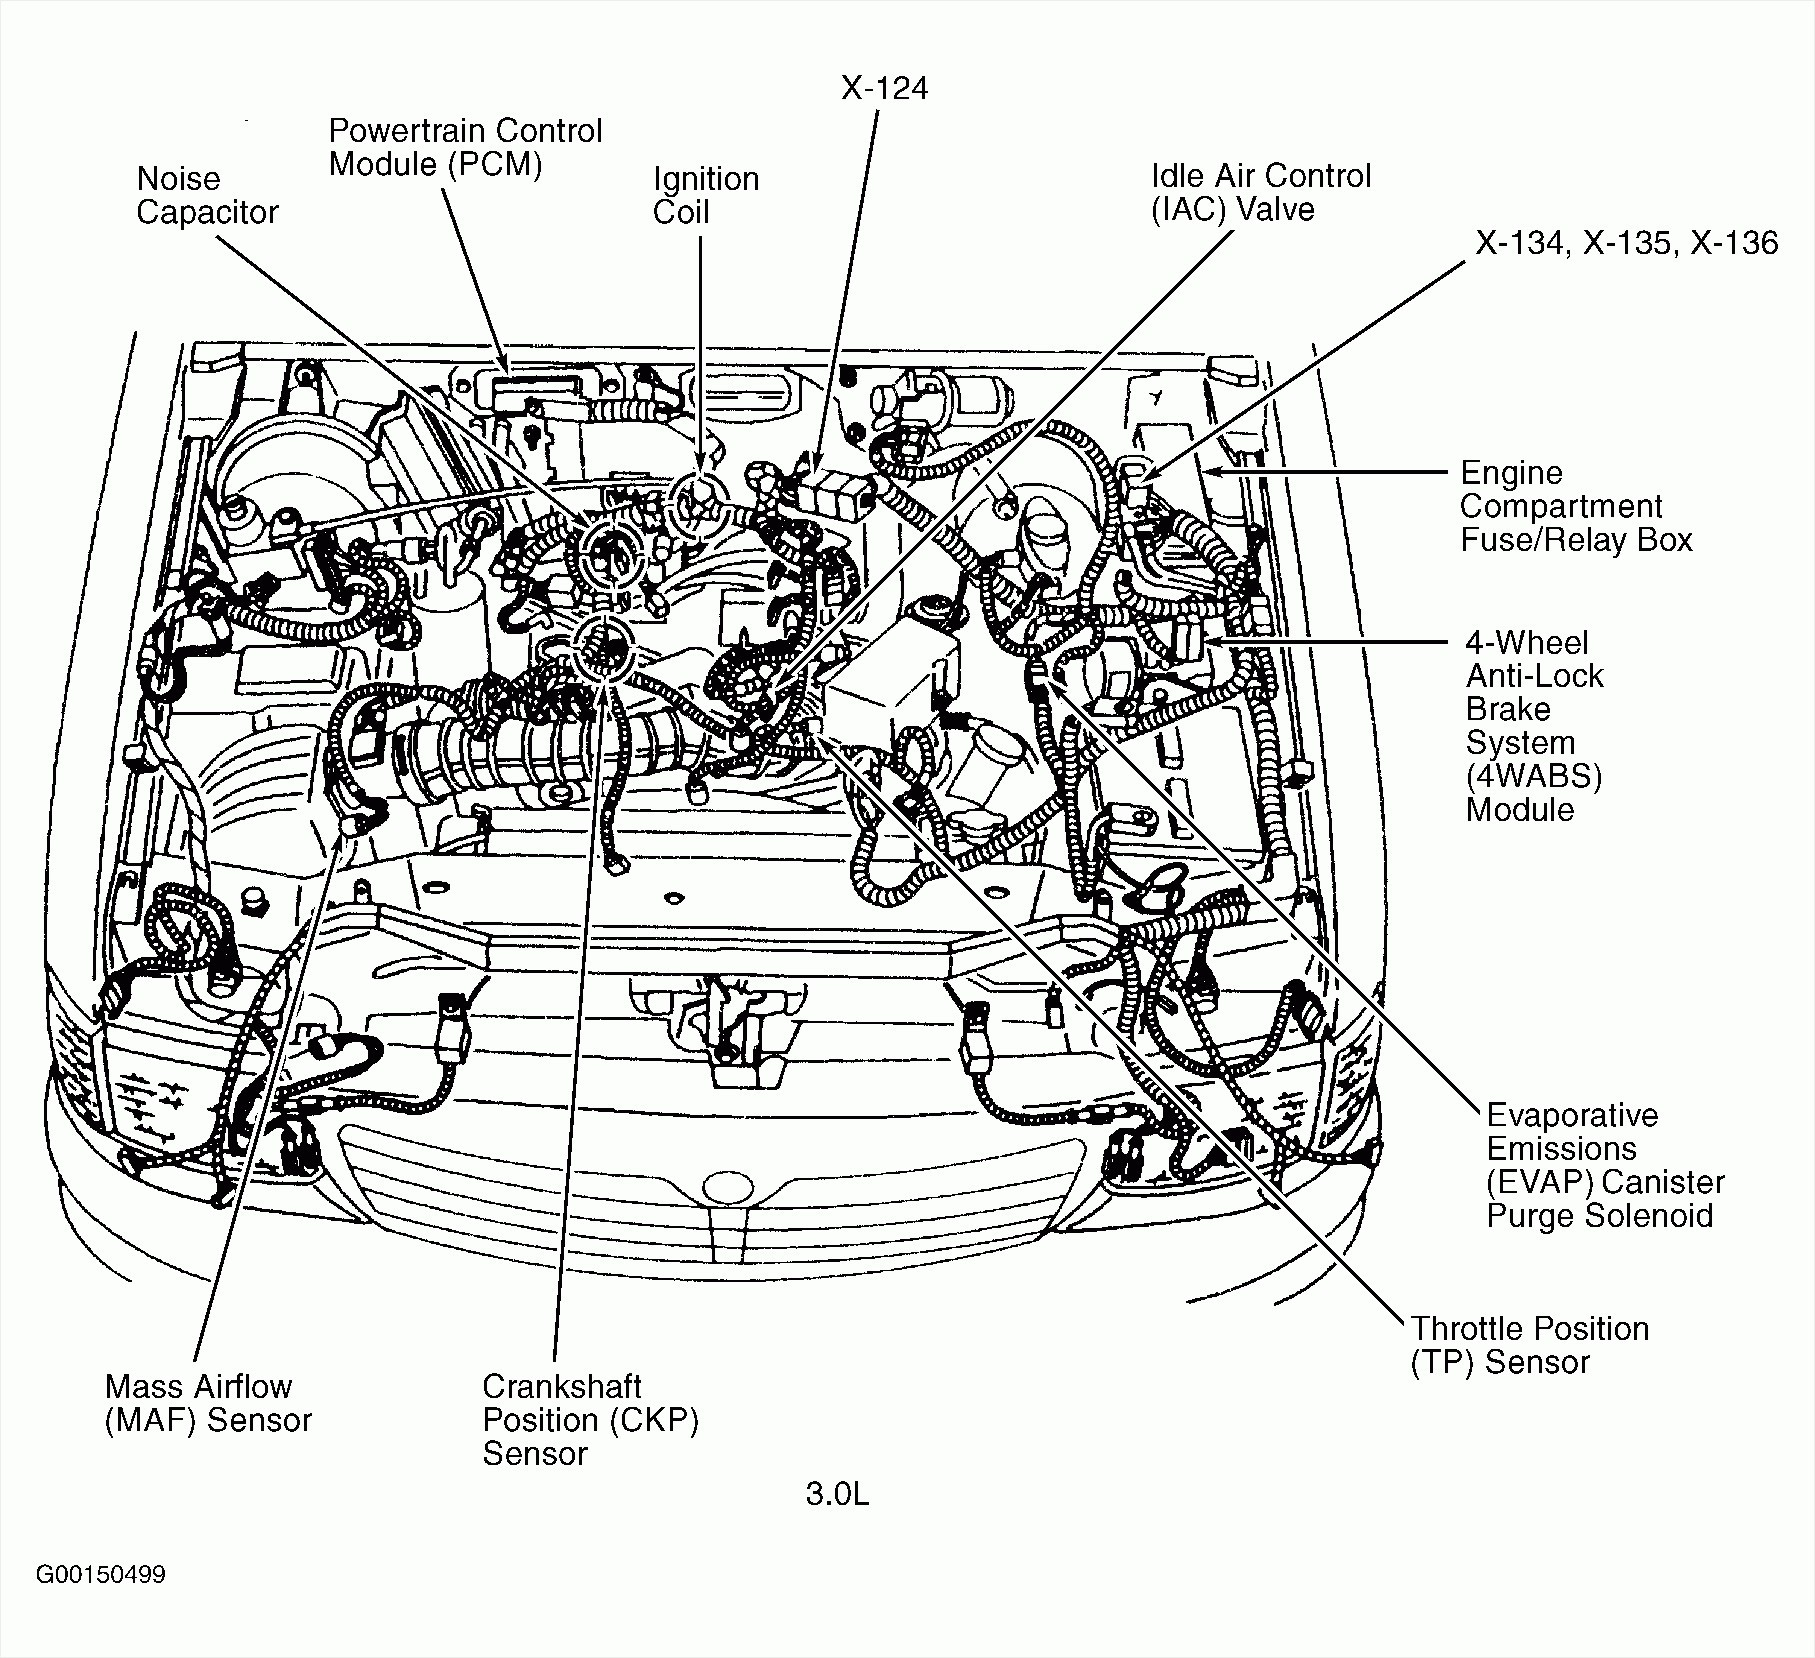 Dodge Caravan Engine Diagram 3 1 Liter V6 Engine Diagram